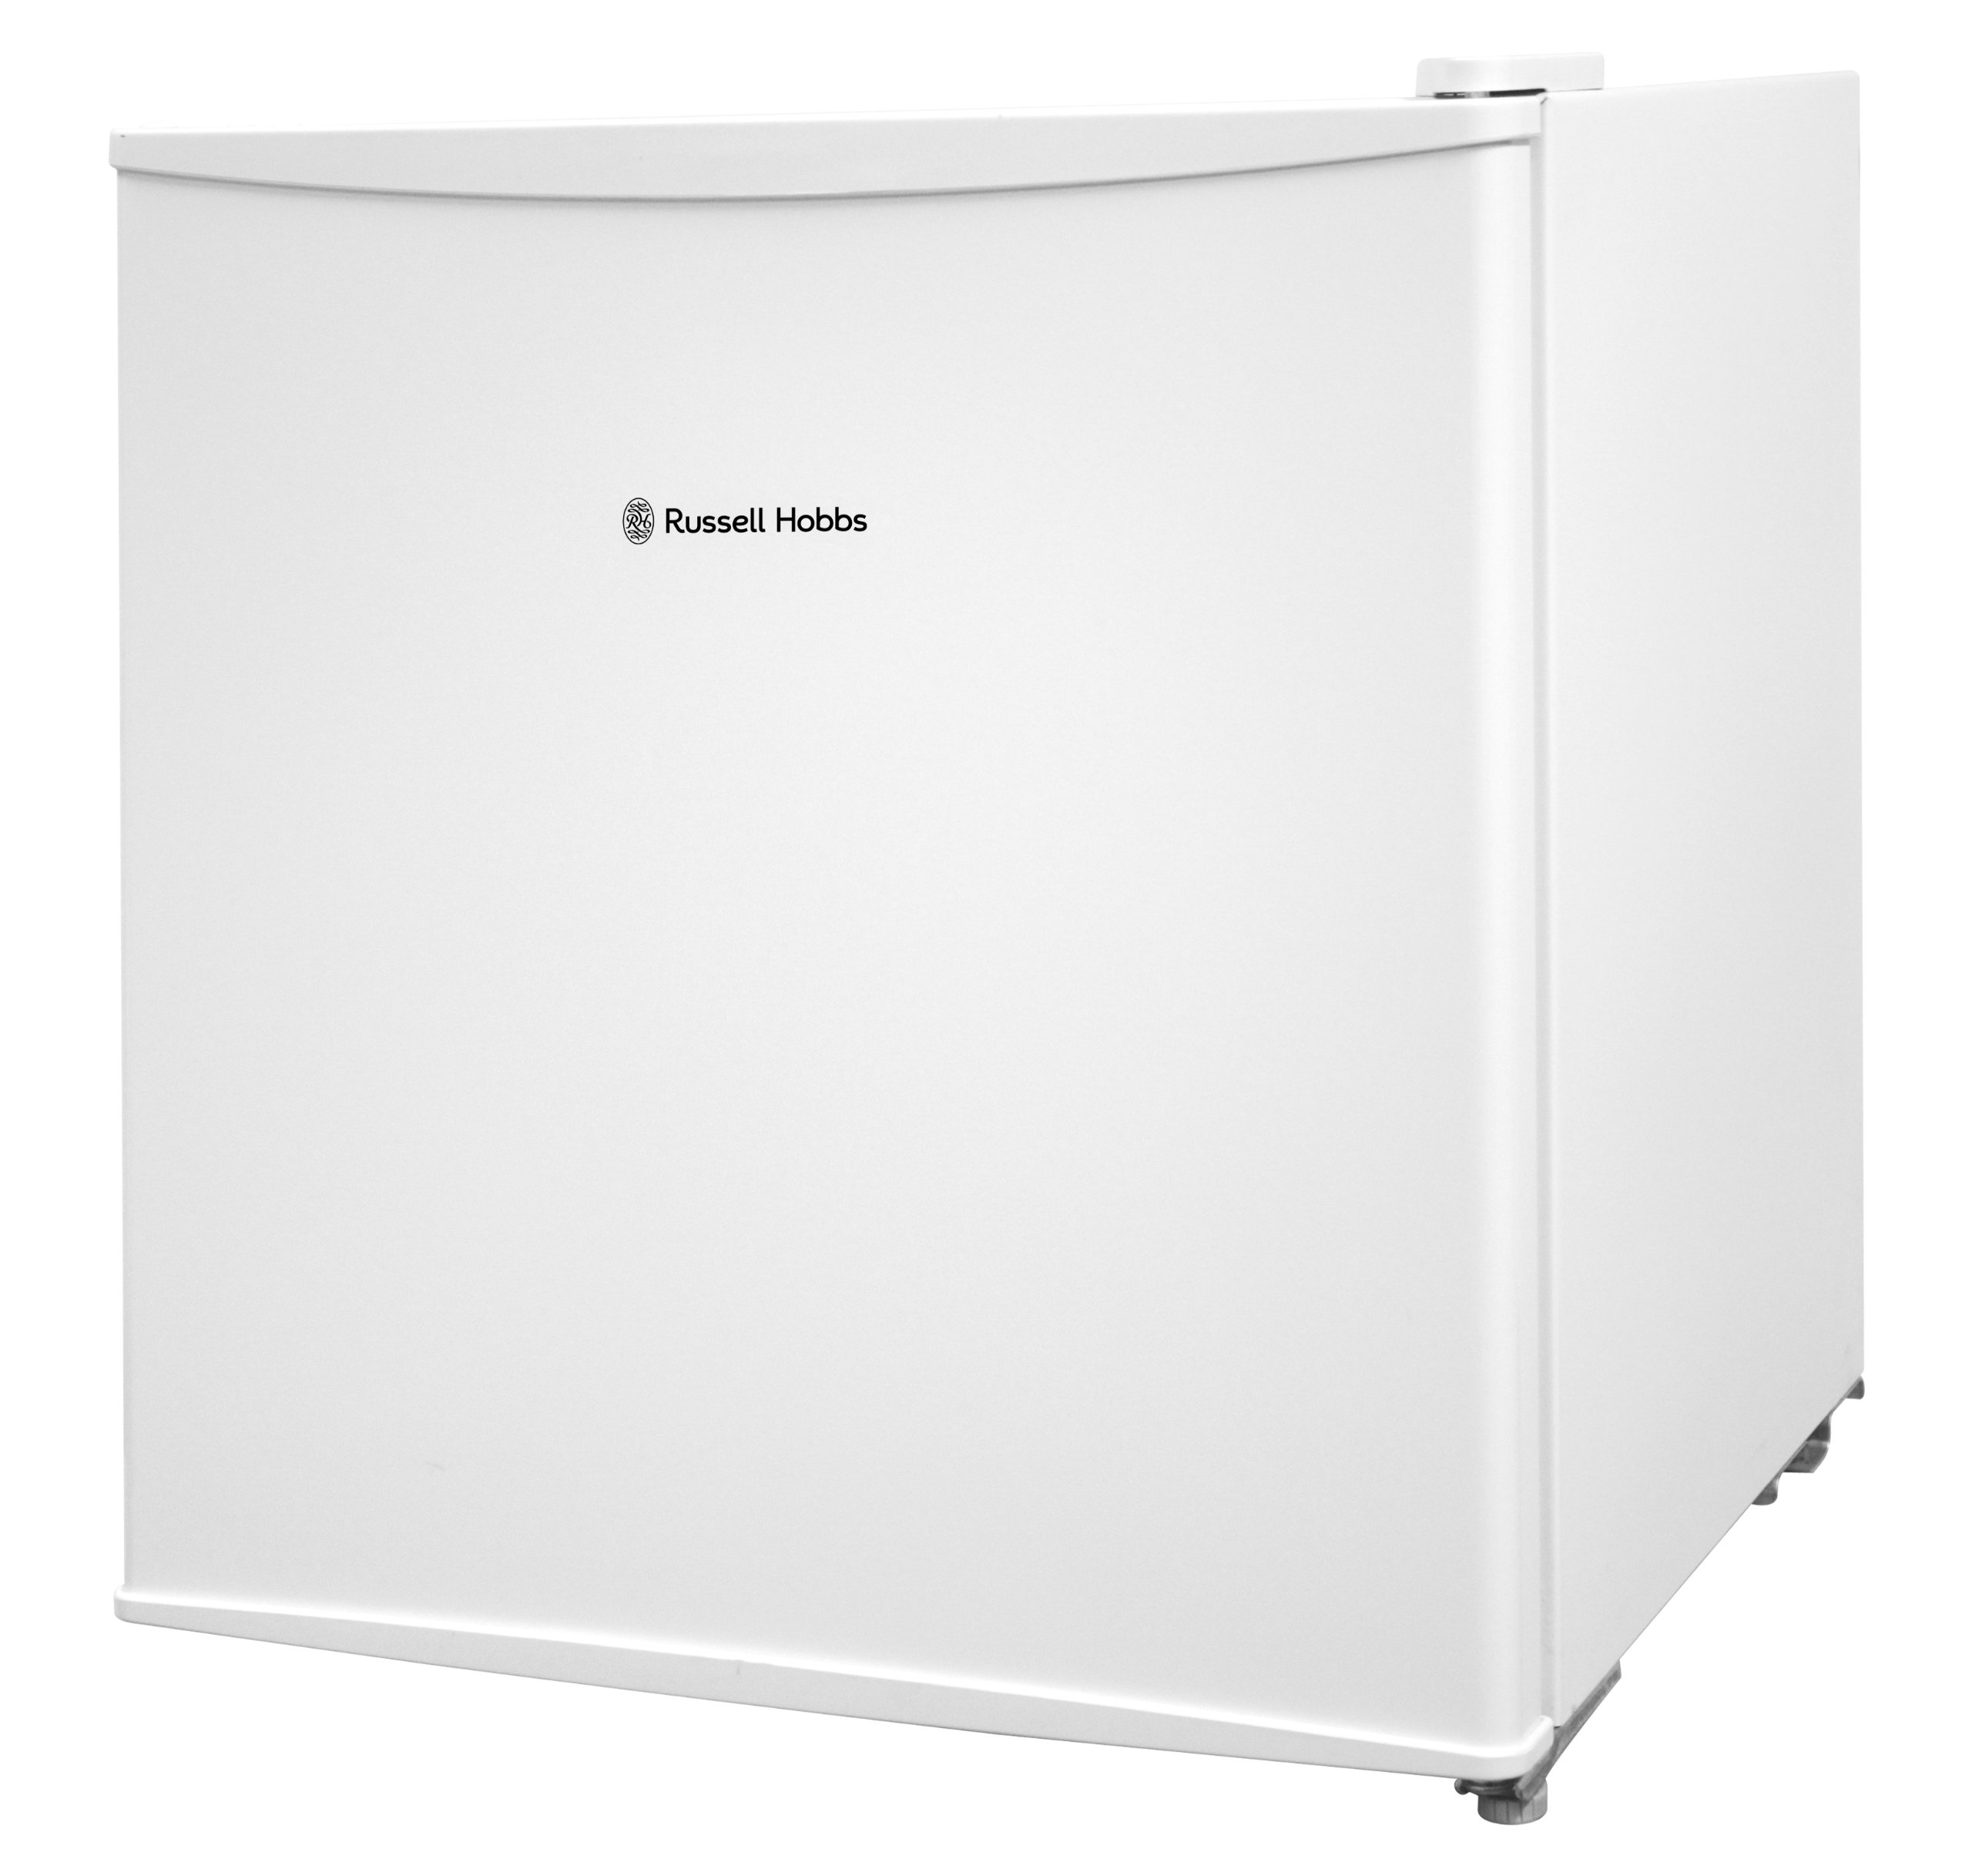 russell hobbs rhttfz1 white table top freezer 32 litre ebay. Black Bedroom Furniture Sets. Home Design Ideas